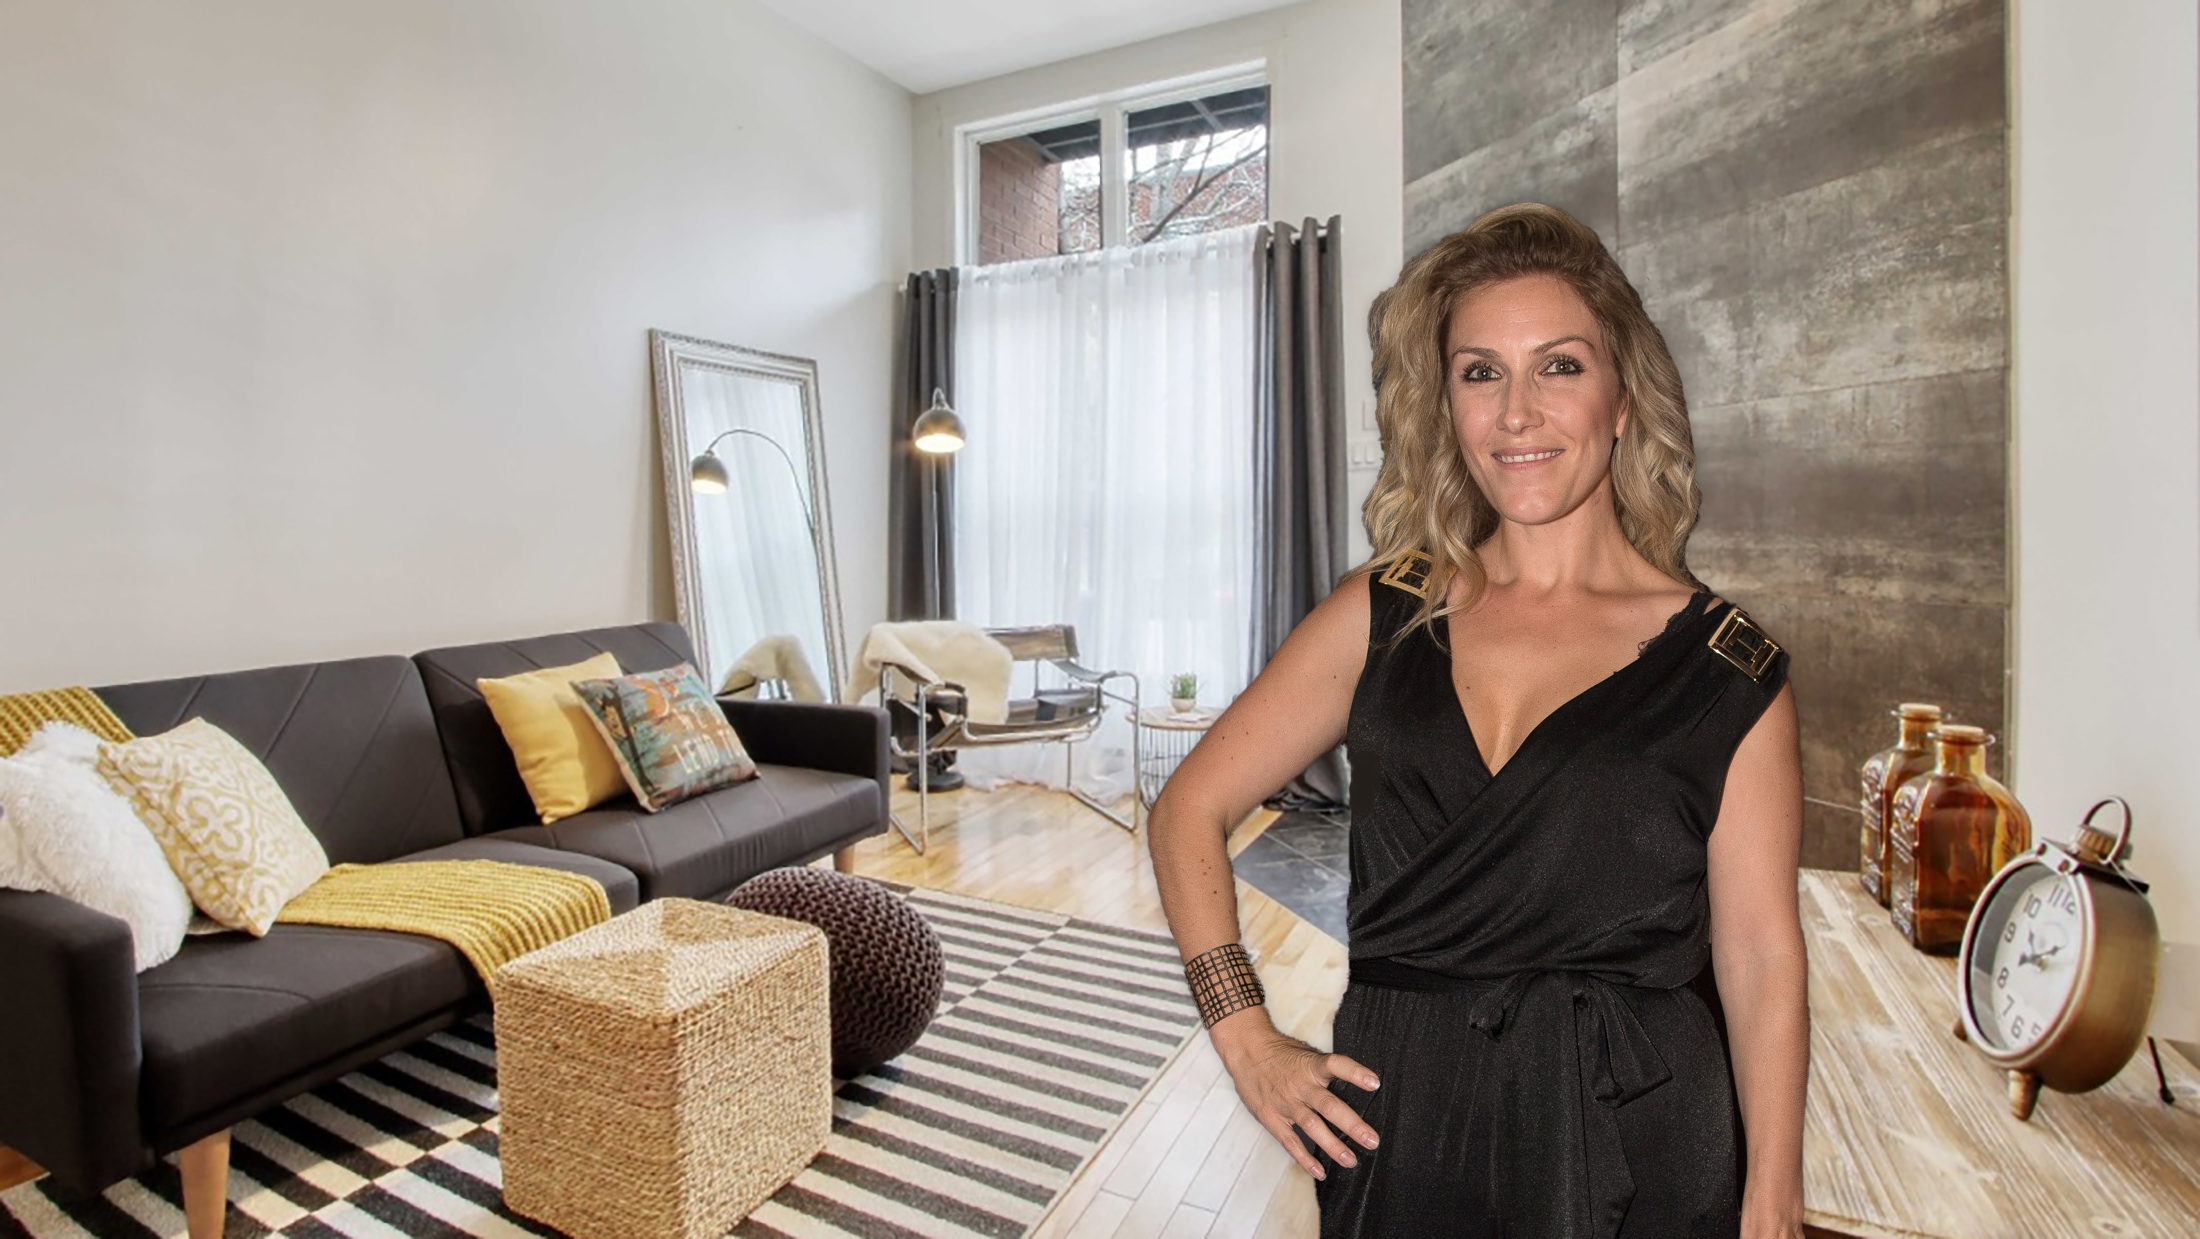 Ingrid Falaise vend son sublime condo à Ville-Marie [PHOTOS]